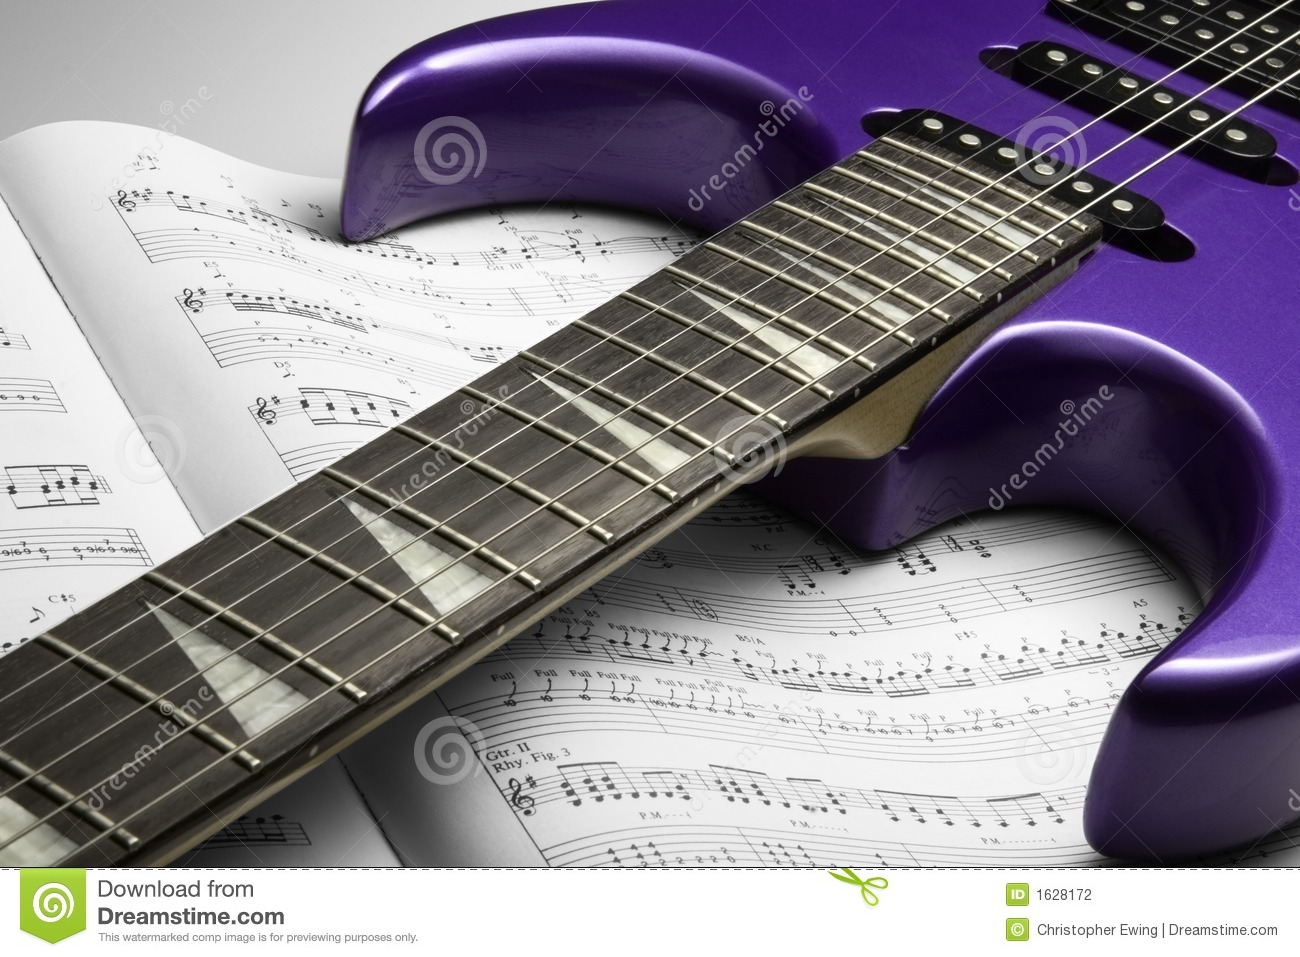 10 Best Websites To Teach You How To Play The Guitar